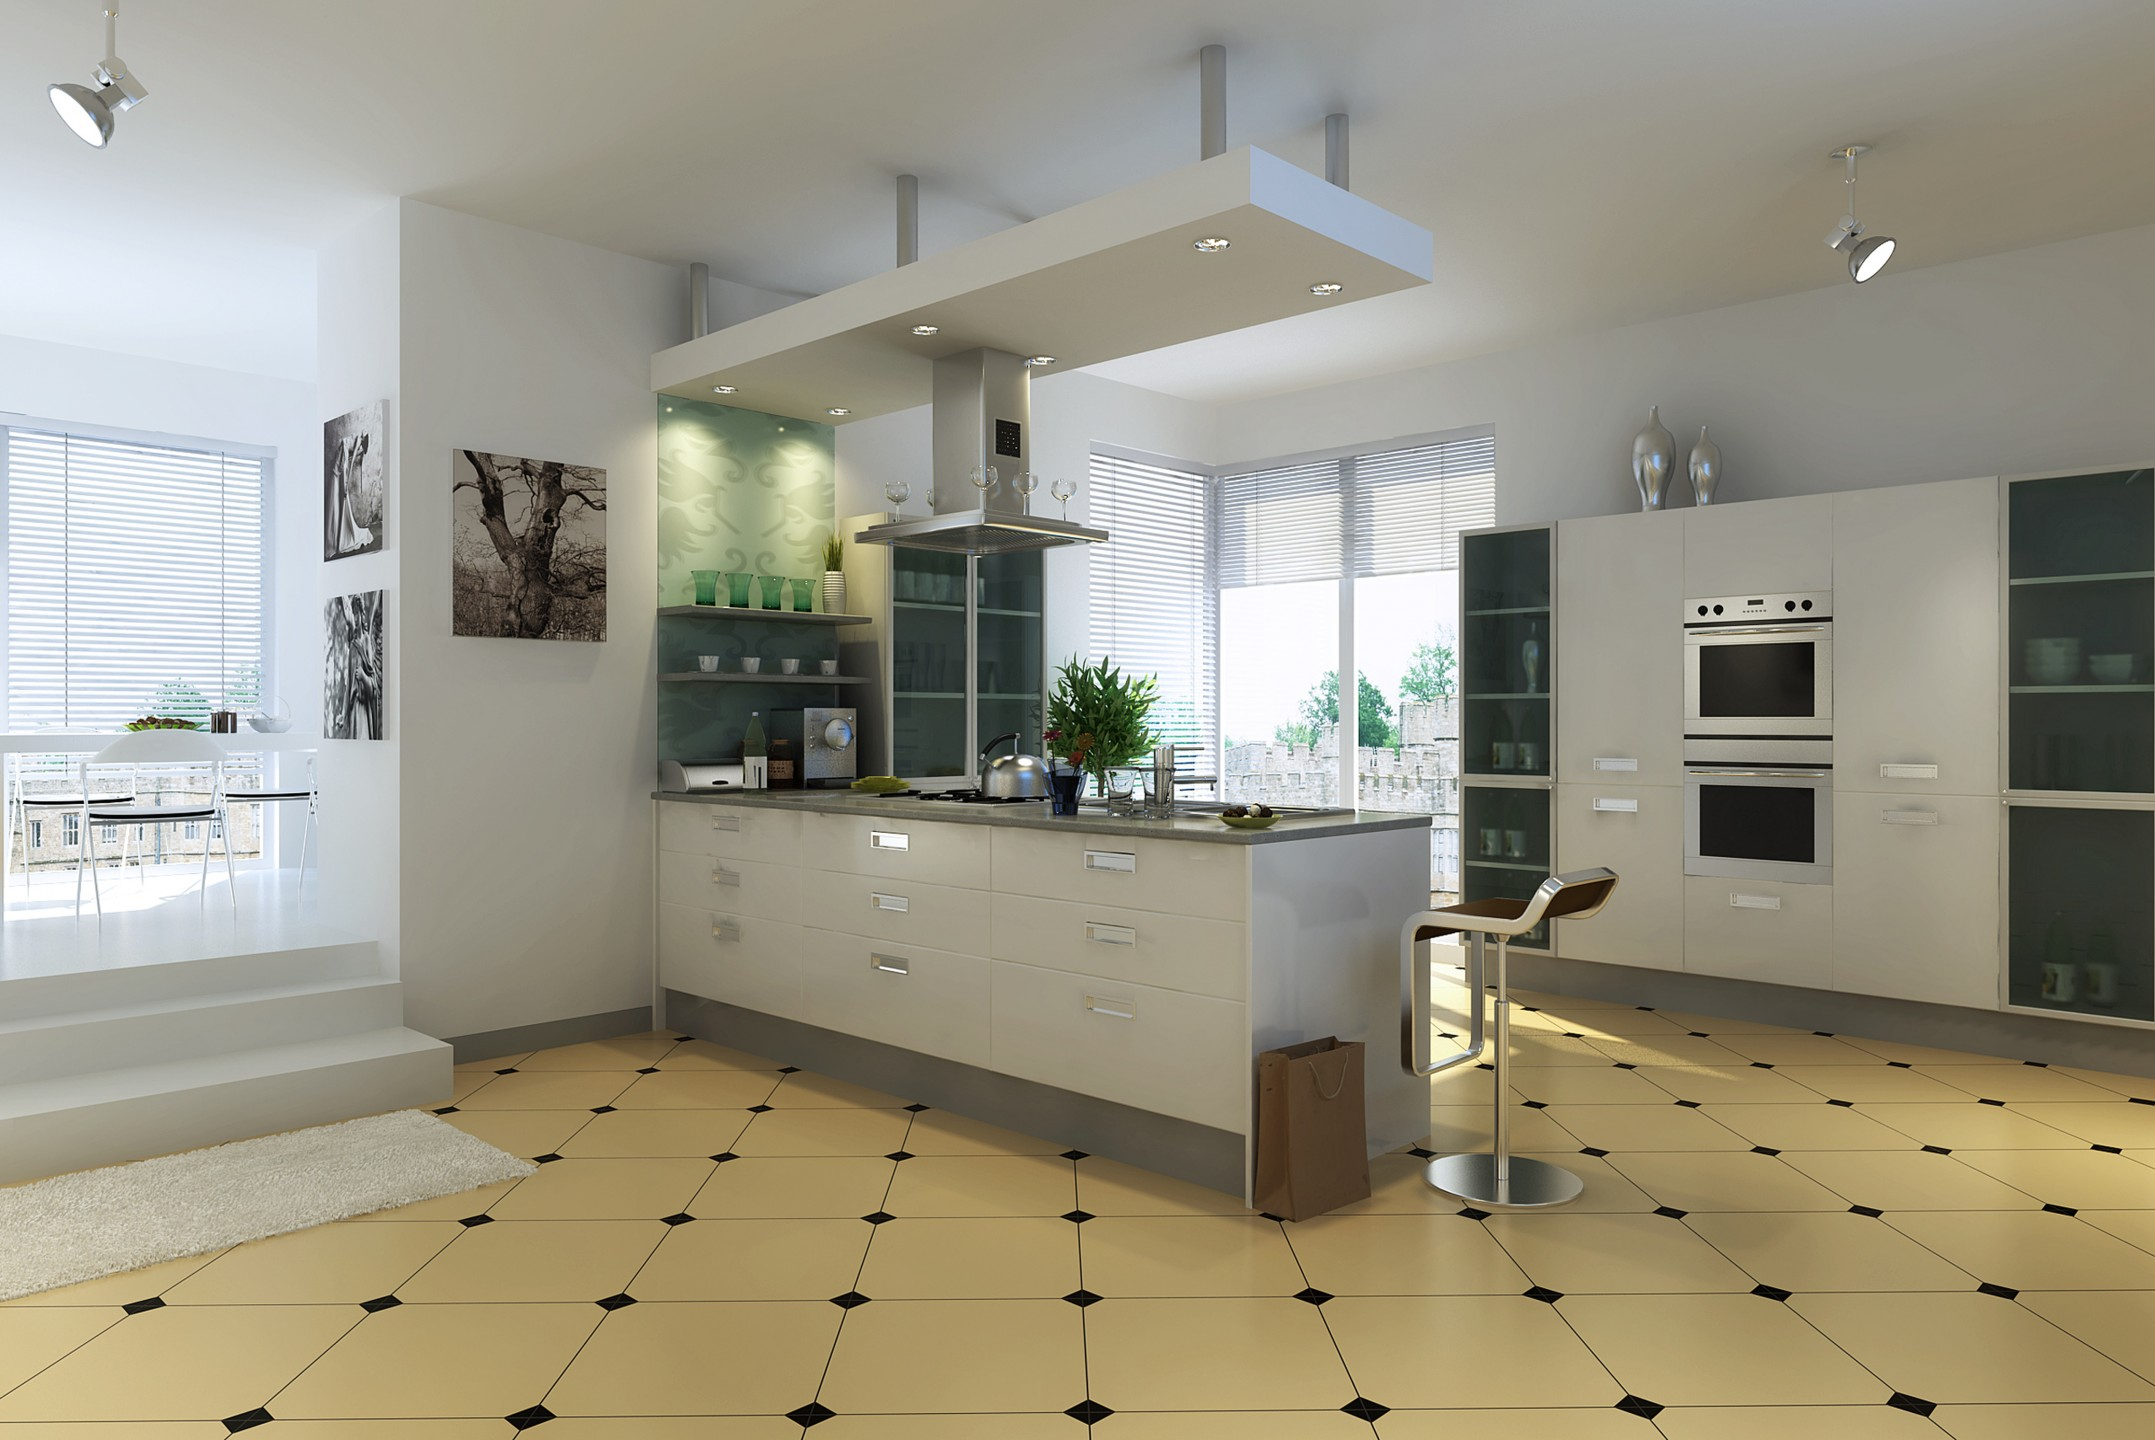 10x10 kitchen remodel cost countertop repair kit 25 43 latest design ideas of modular pictures